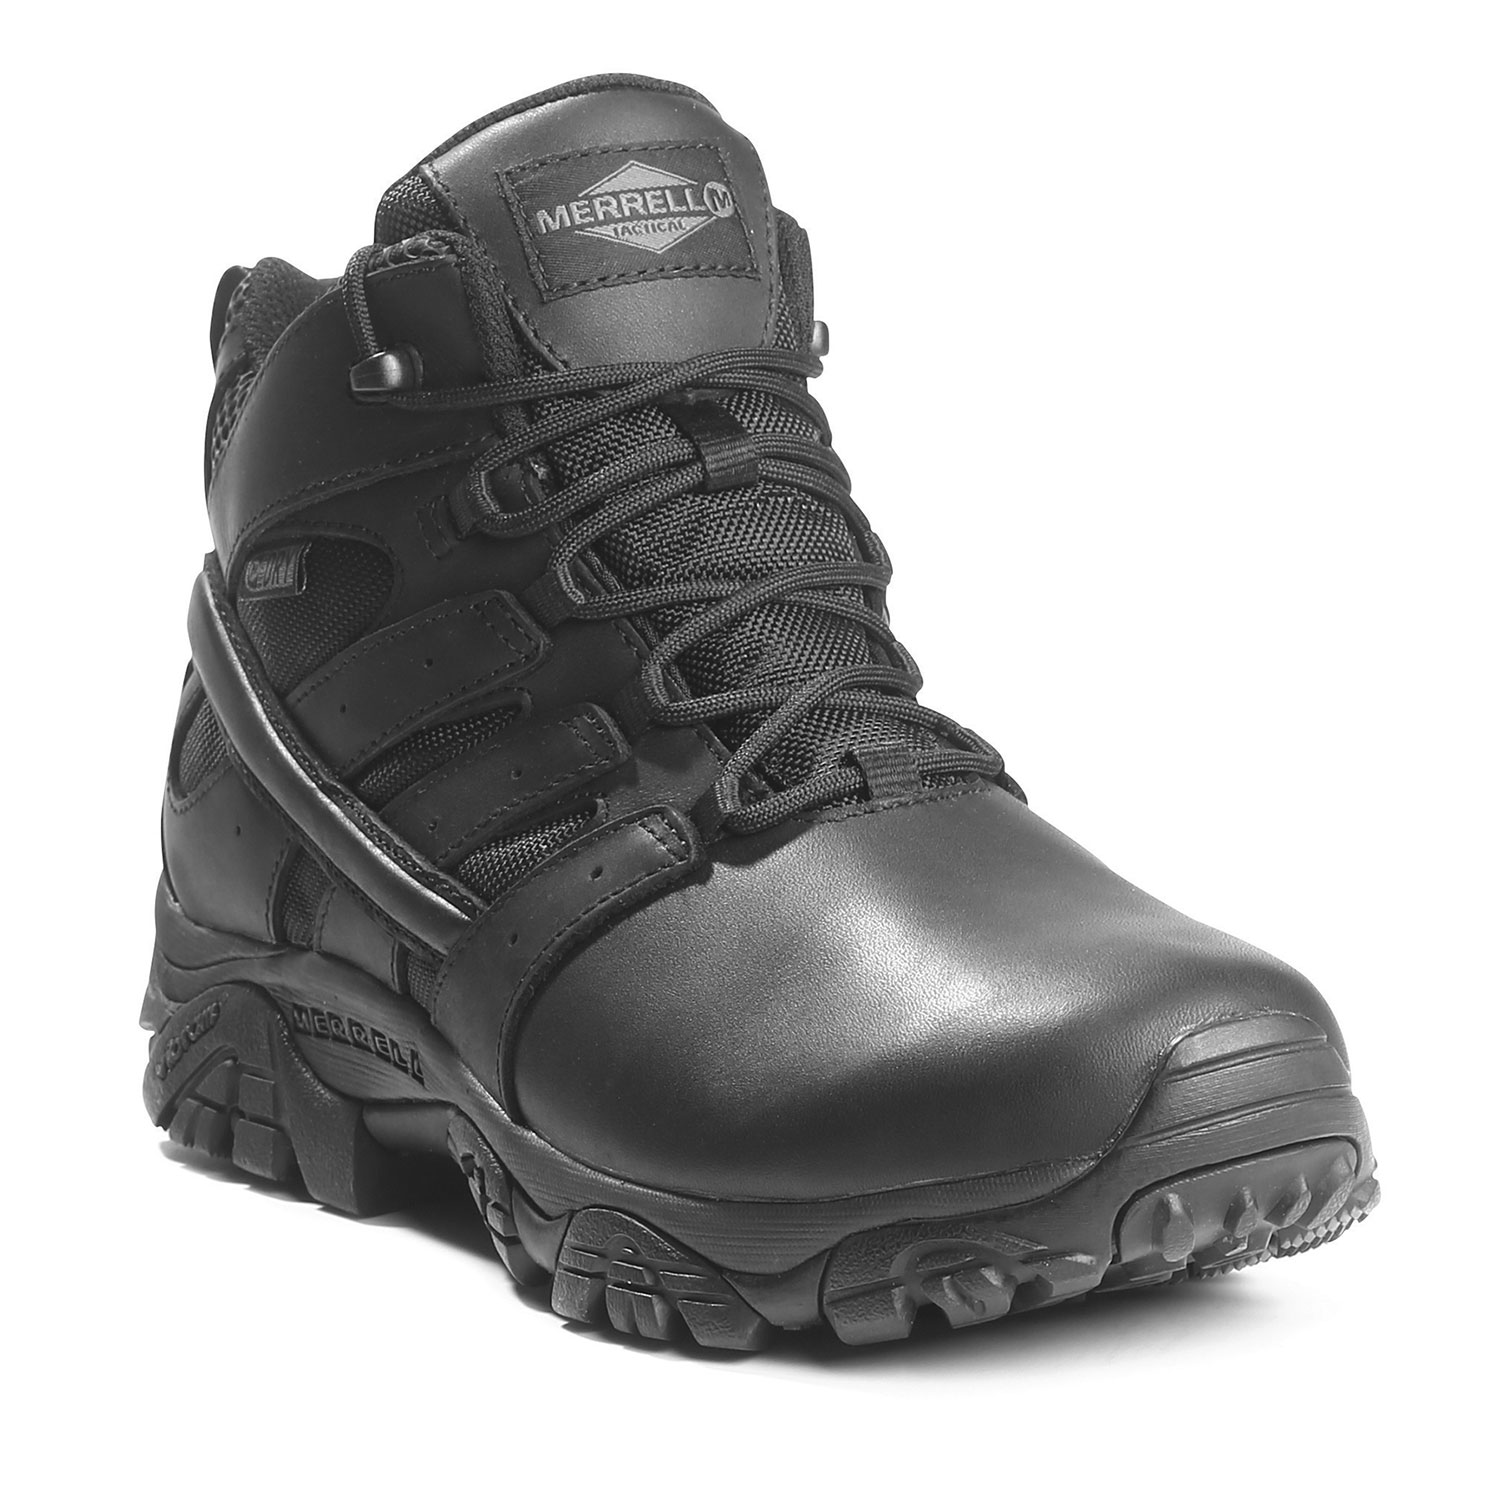 Merrell Moab 2 Mid Tactical Response Waterproof Boots